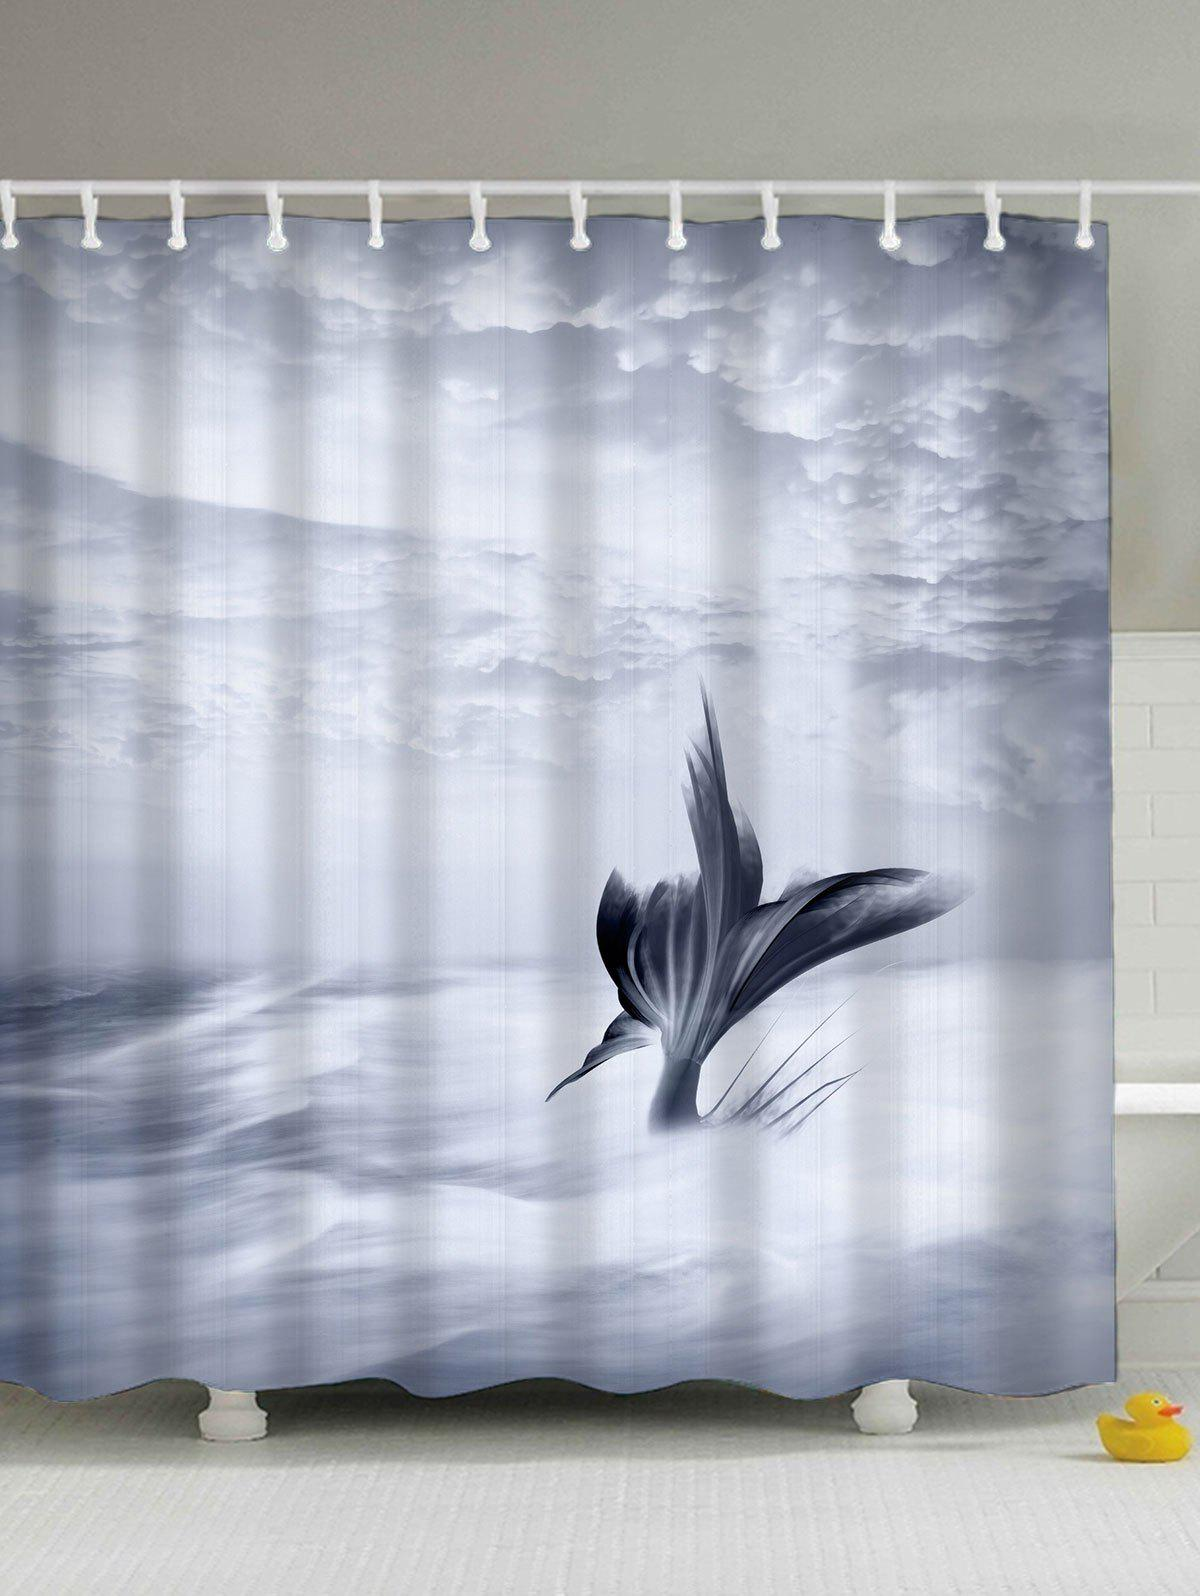 Fish Tail Eco-Friendly Water Resistant Shower Curtain flower butterfly mantis water resistant shower curtain